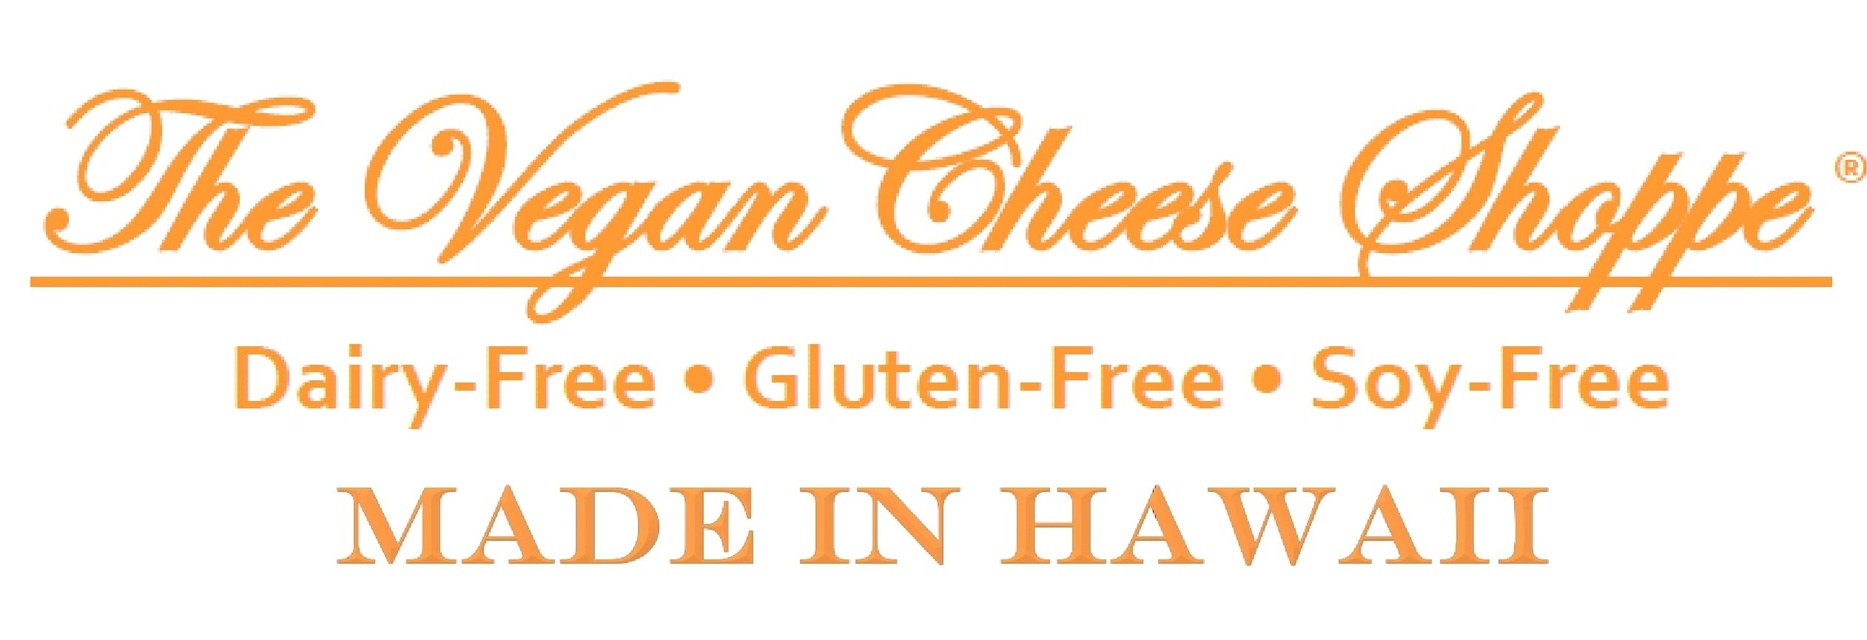 The Vegan Cheese Shoppe